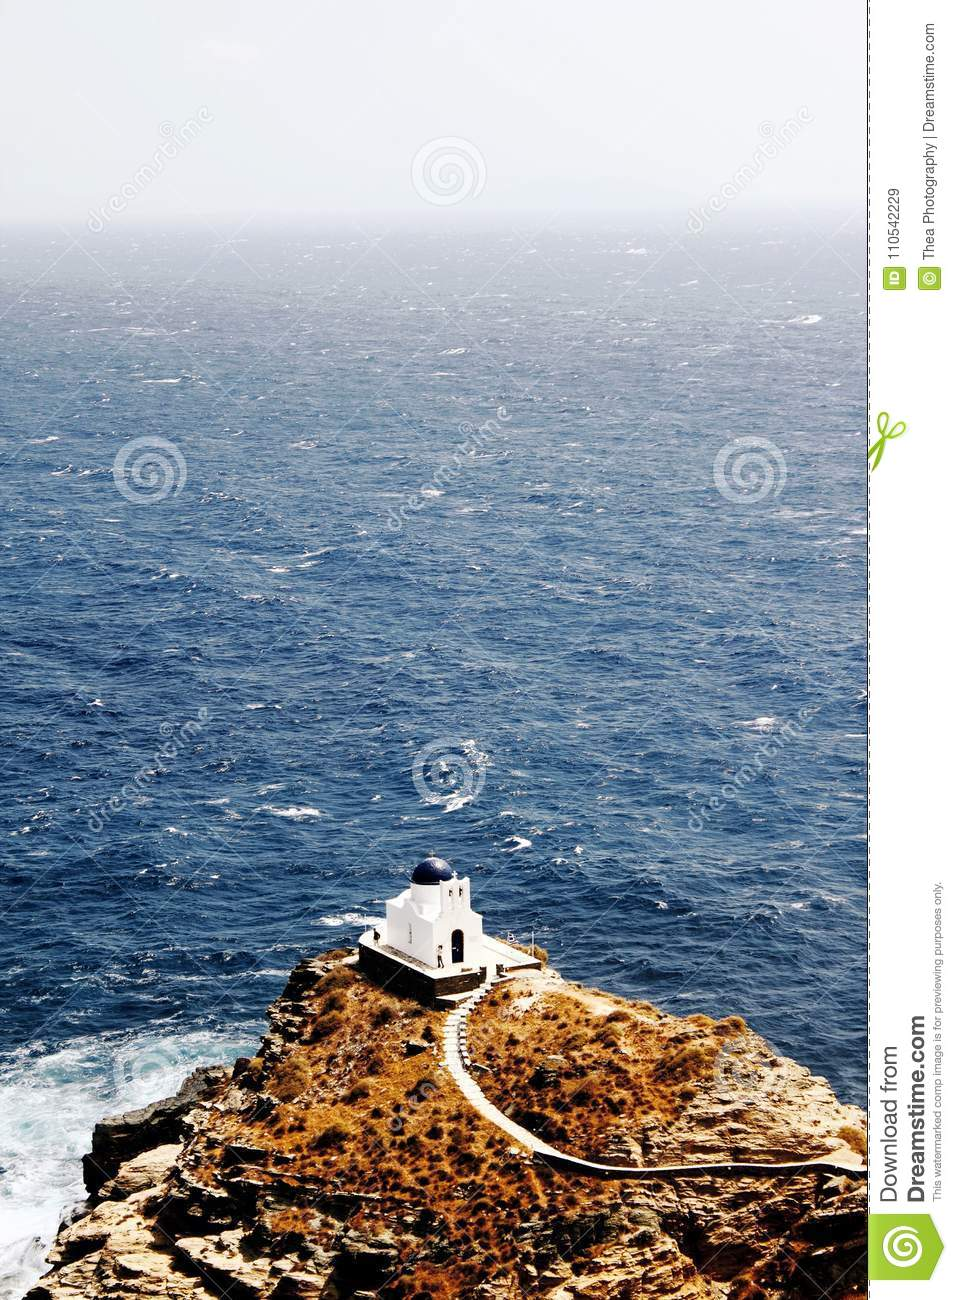 Greece, Sifnos island, the Church of Seven Martyrs